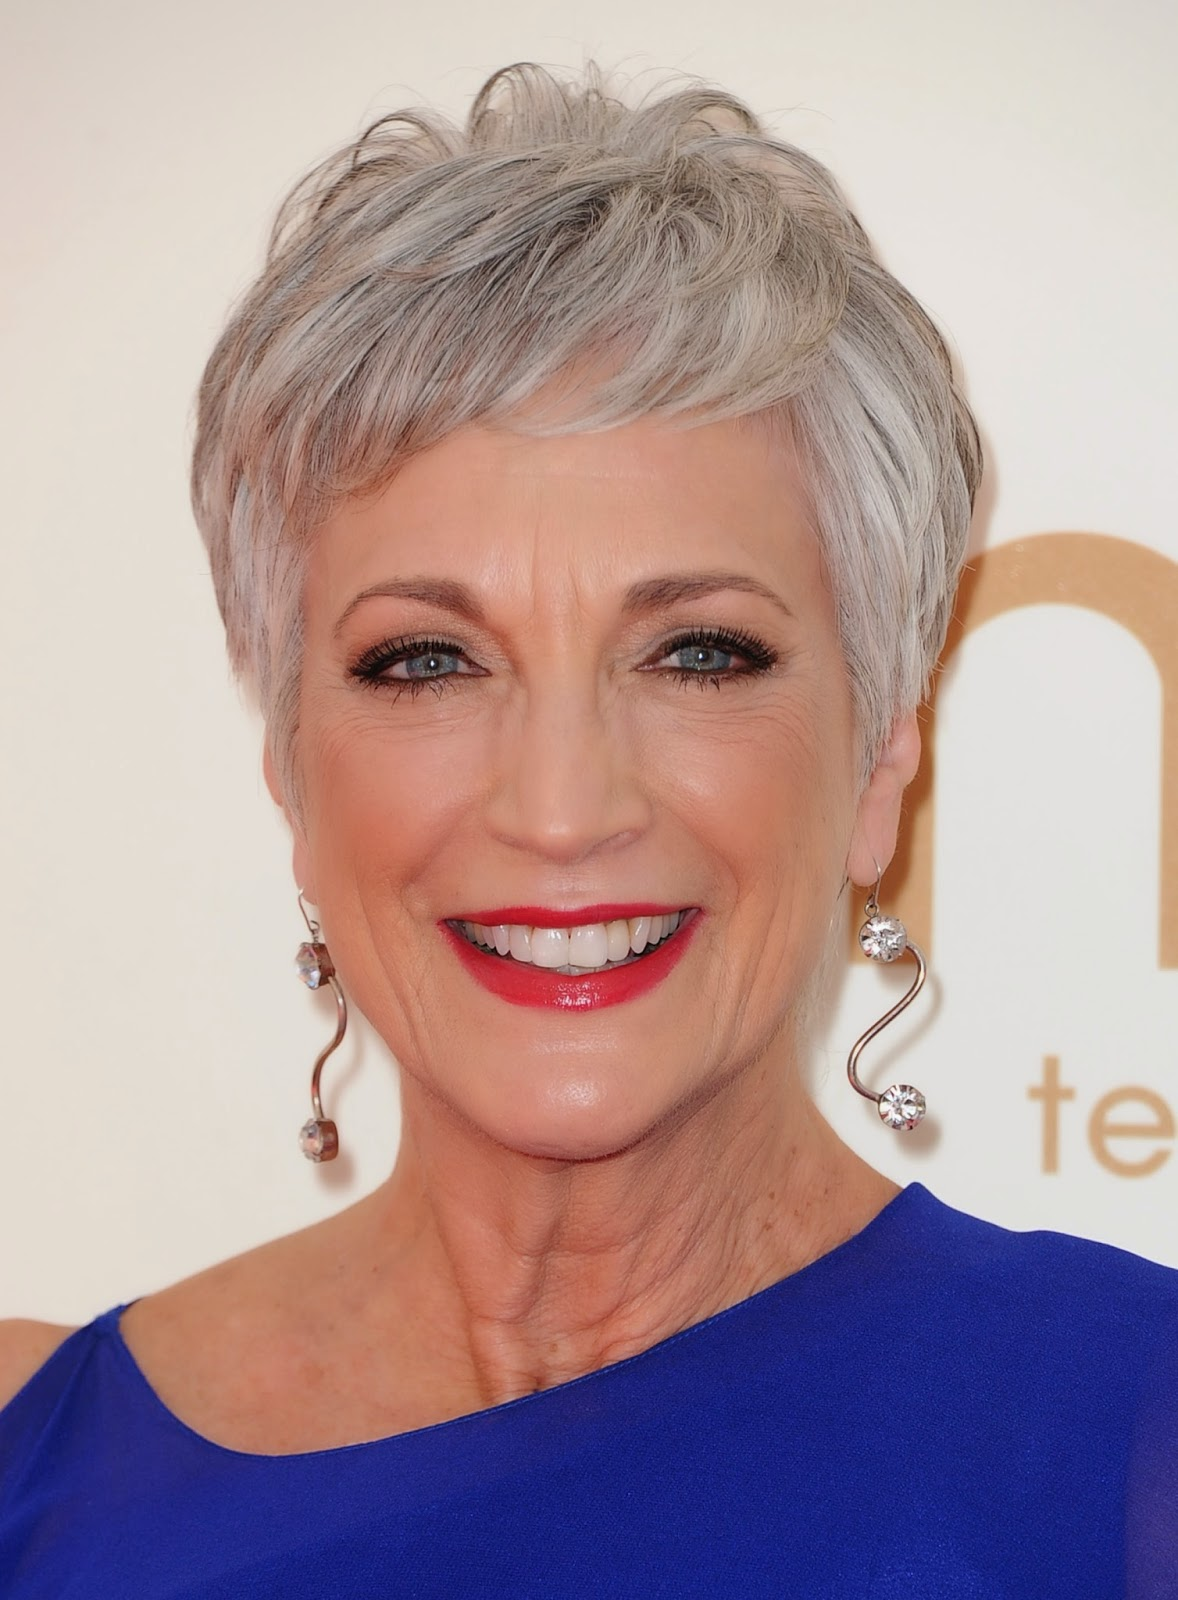 Gray Hair Short Pixie Haircuts for Women over 60s